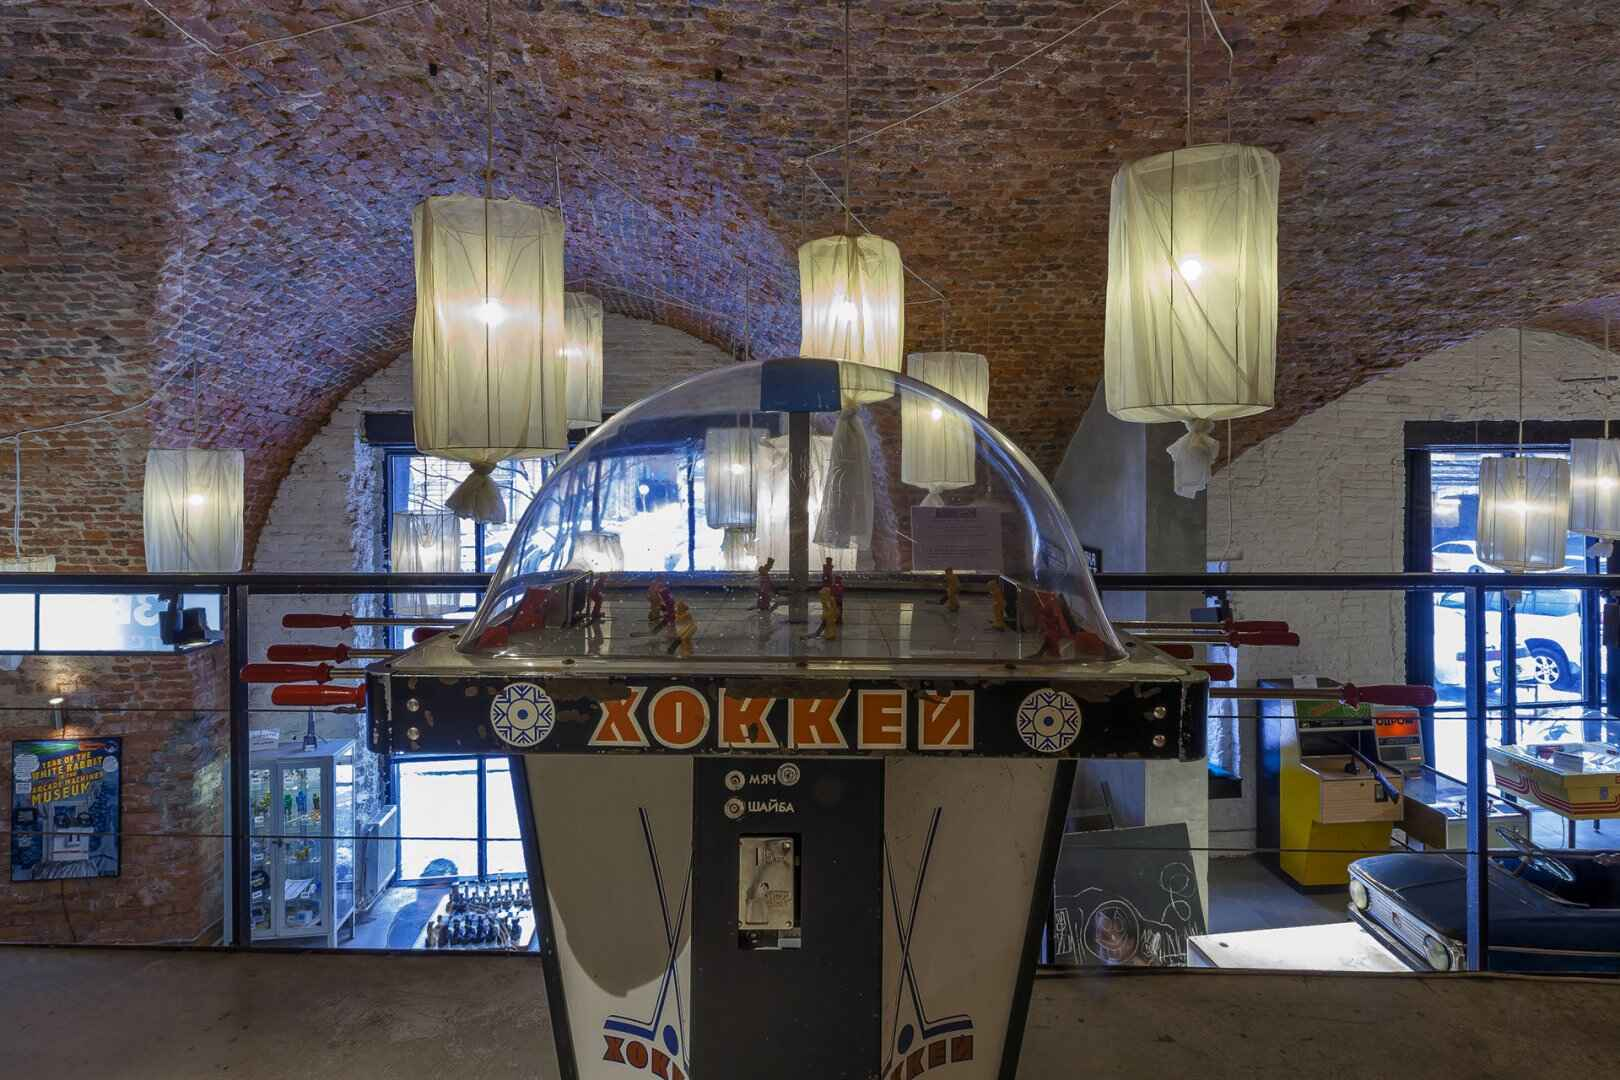 : Museum of Soviet arcade machines in Saint Petersburg | St. Petersburg CityPass, Фото 9